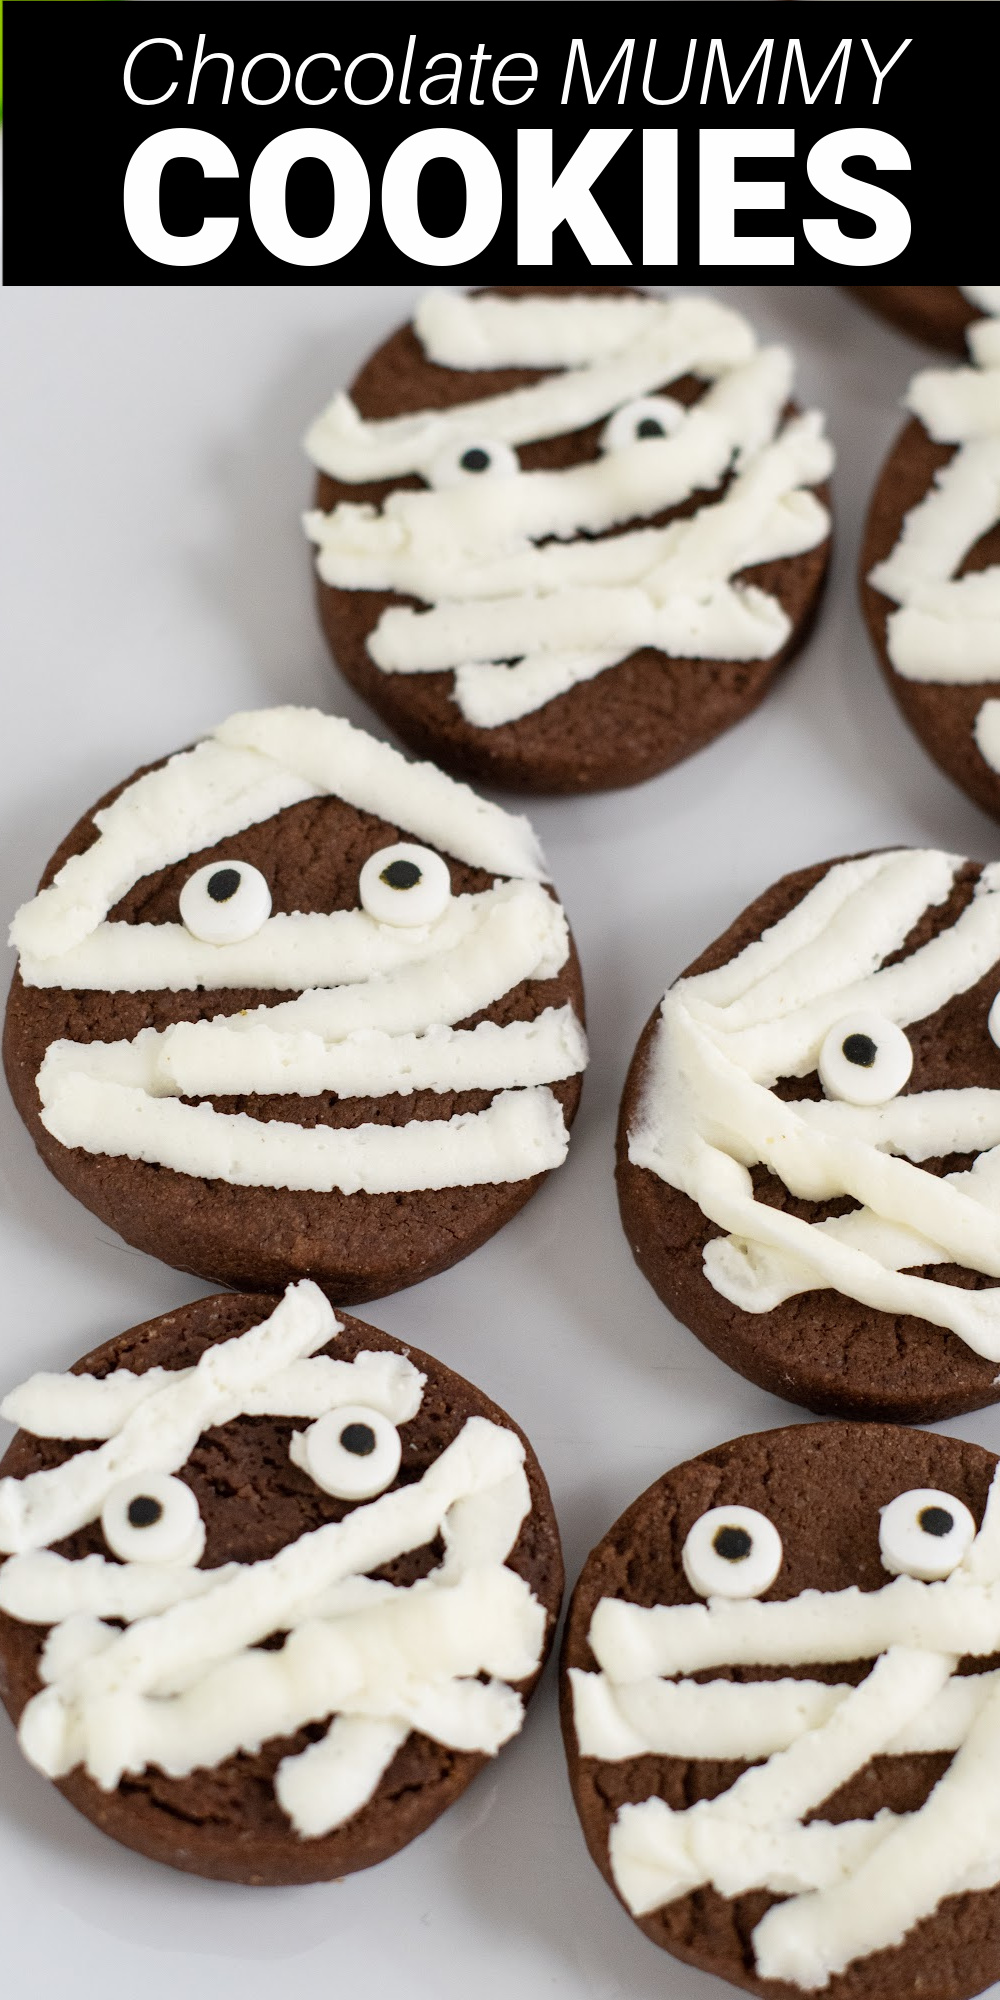 These mummy cookies are as easy to make as they are cute! The chewy chocolate cookie base is topped with strips of creamy buttercream frosting making the cutest Halloween treats.